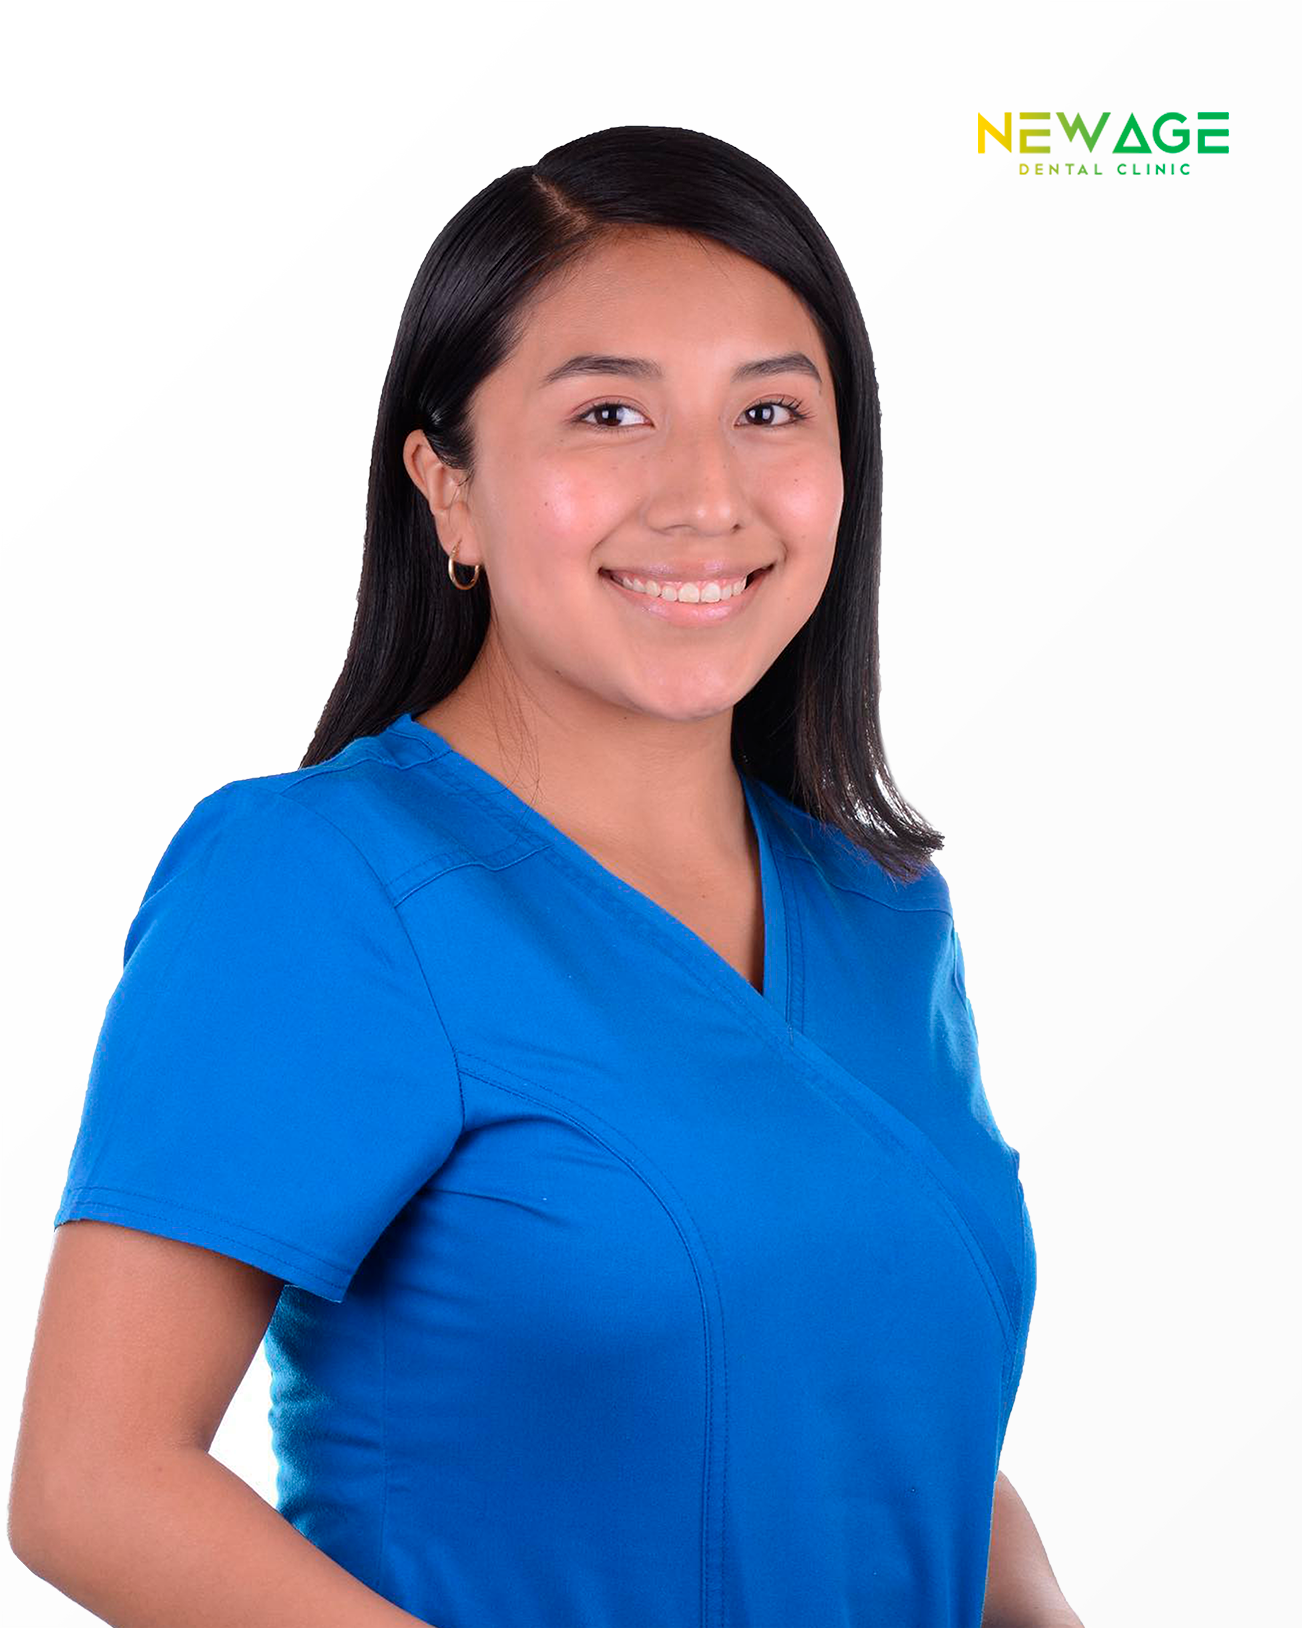 Jaqueline Gutierrez, dental assistant at New Age Dental Clinic in Tijuana